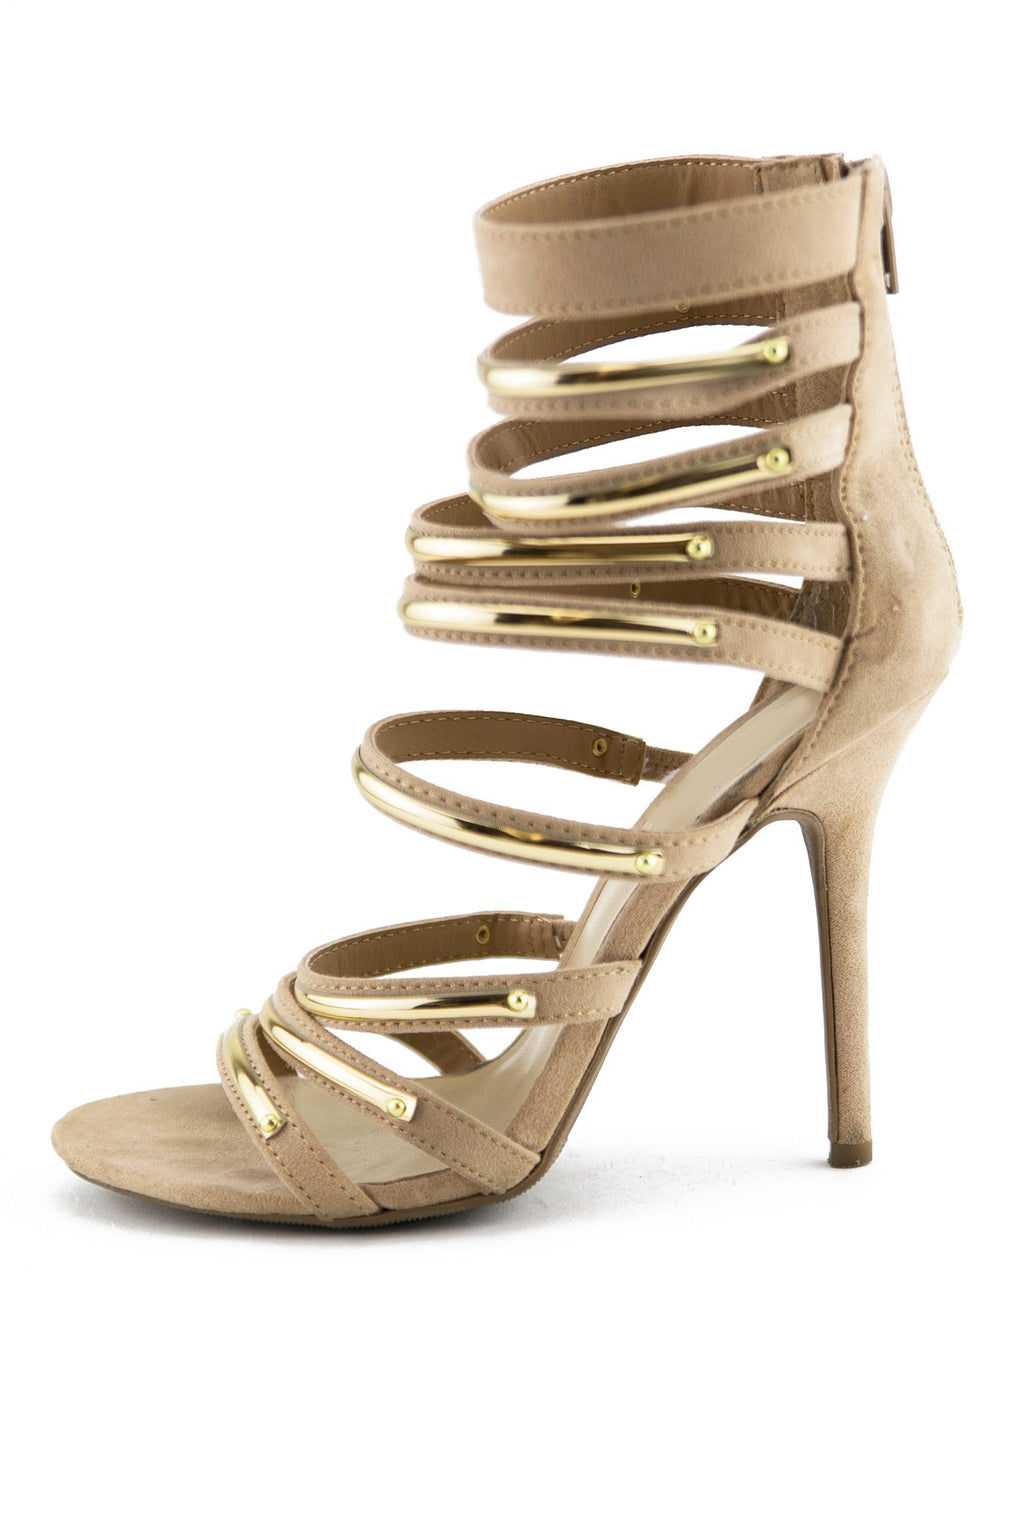 LAIN PLATED STRAPPY SANDAL HEEL - Taupe - Haute & Rebellious